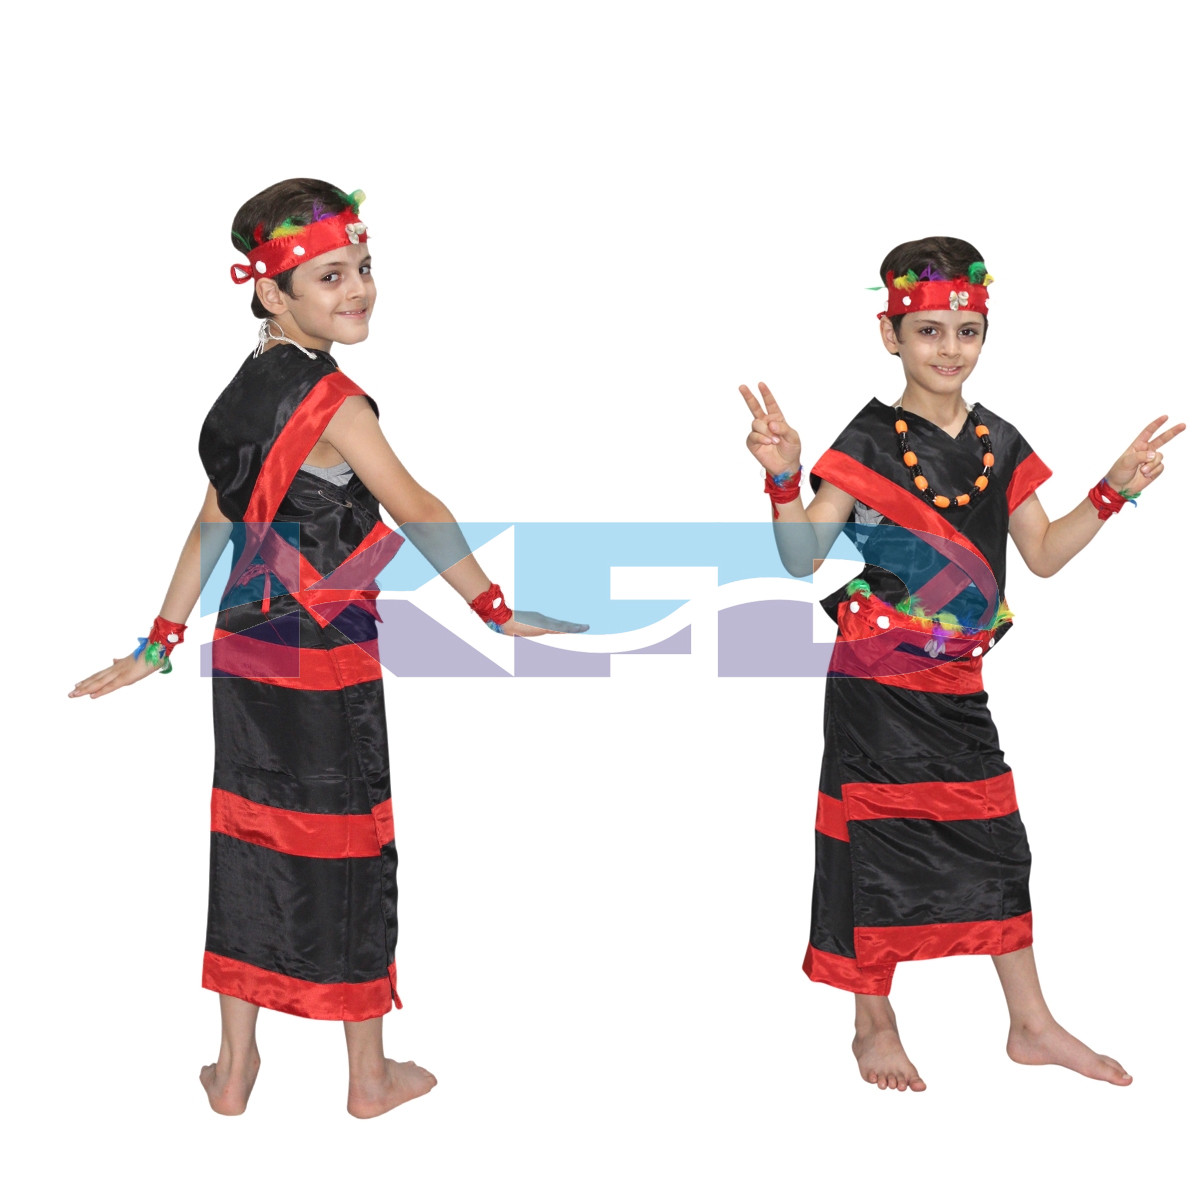 Nagaland boy fancy dress for kids,Trible costume for School Annual function/Theme Party/Competition/Stage Shows Dress